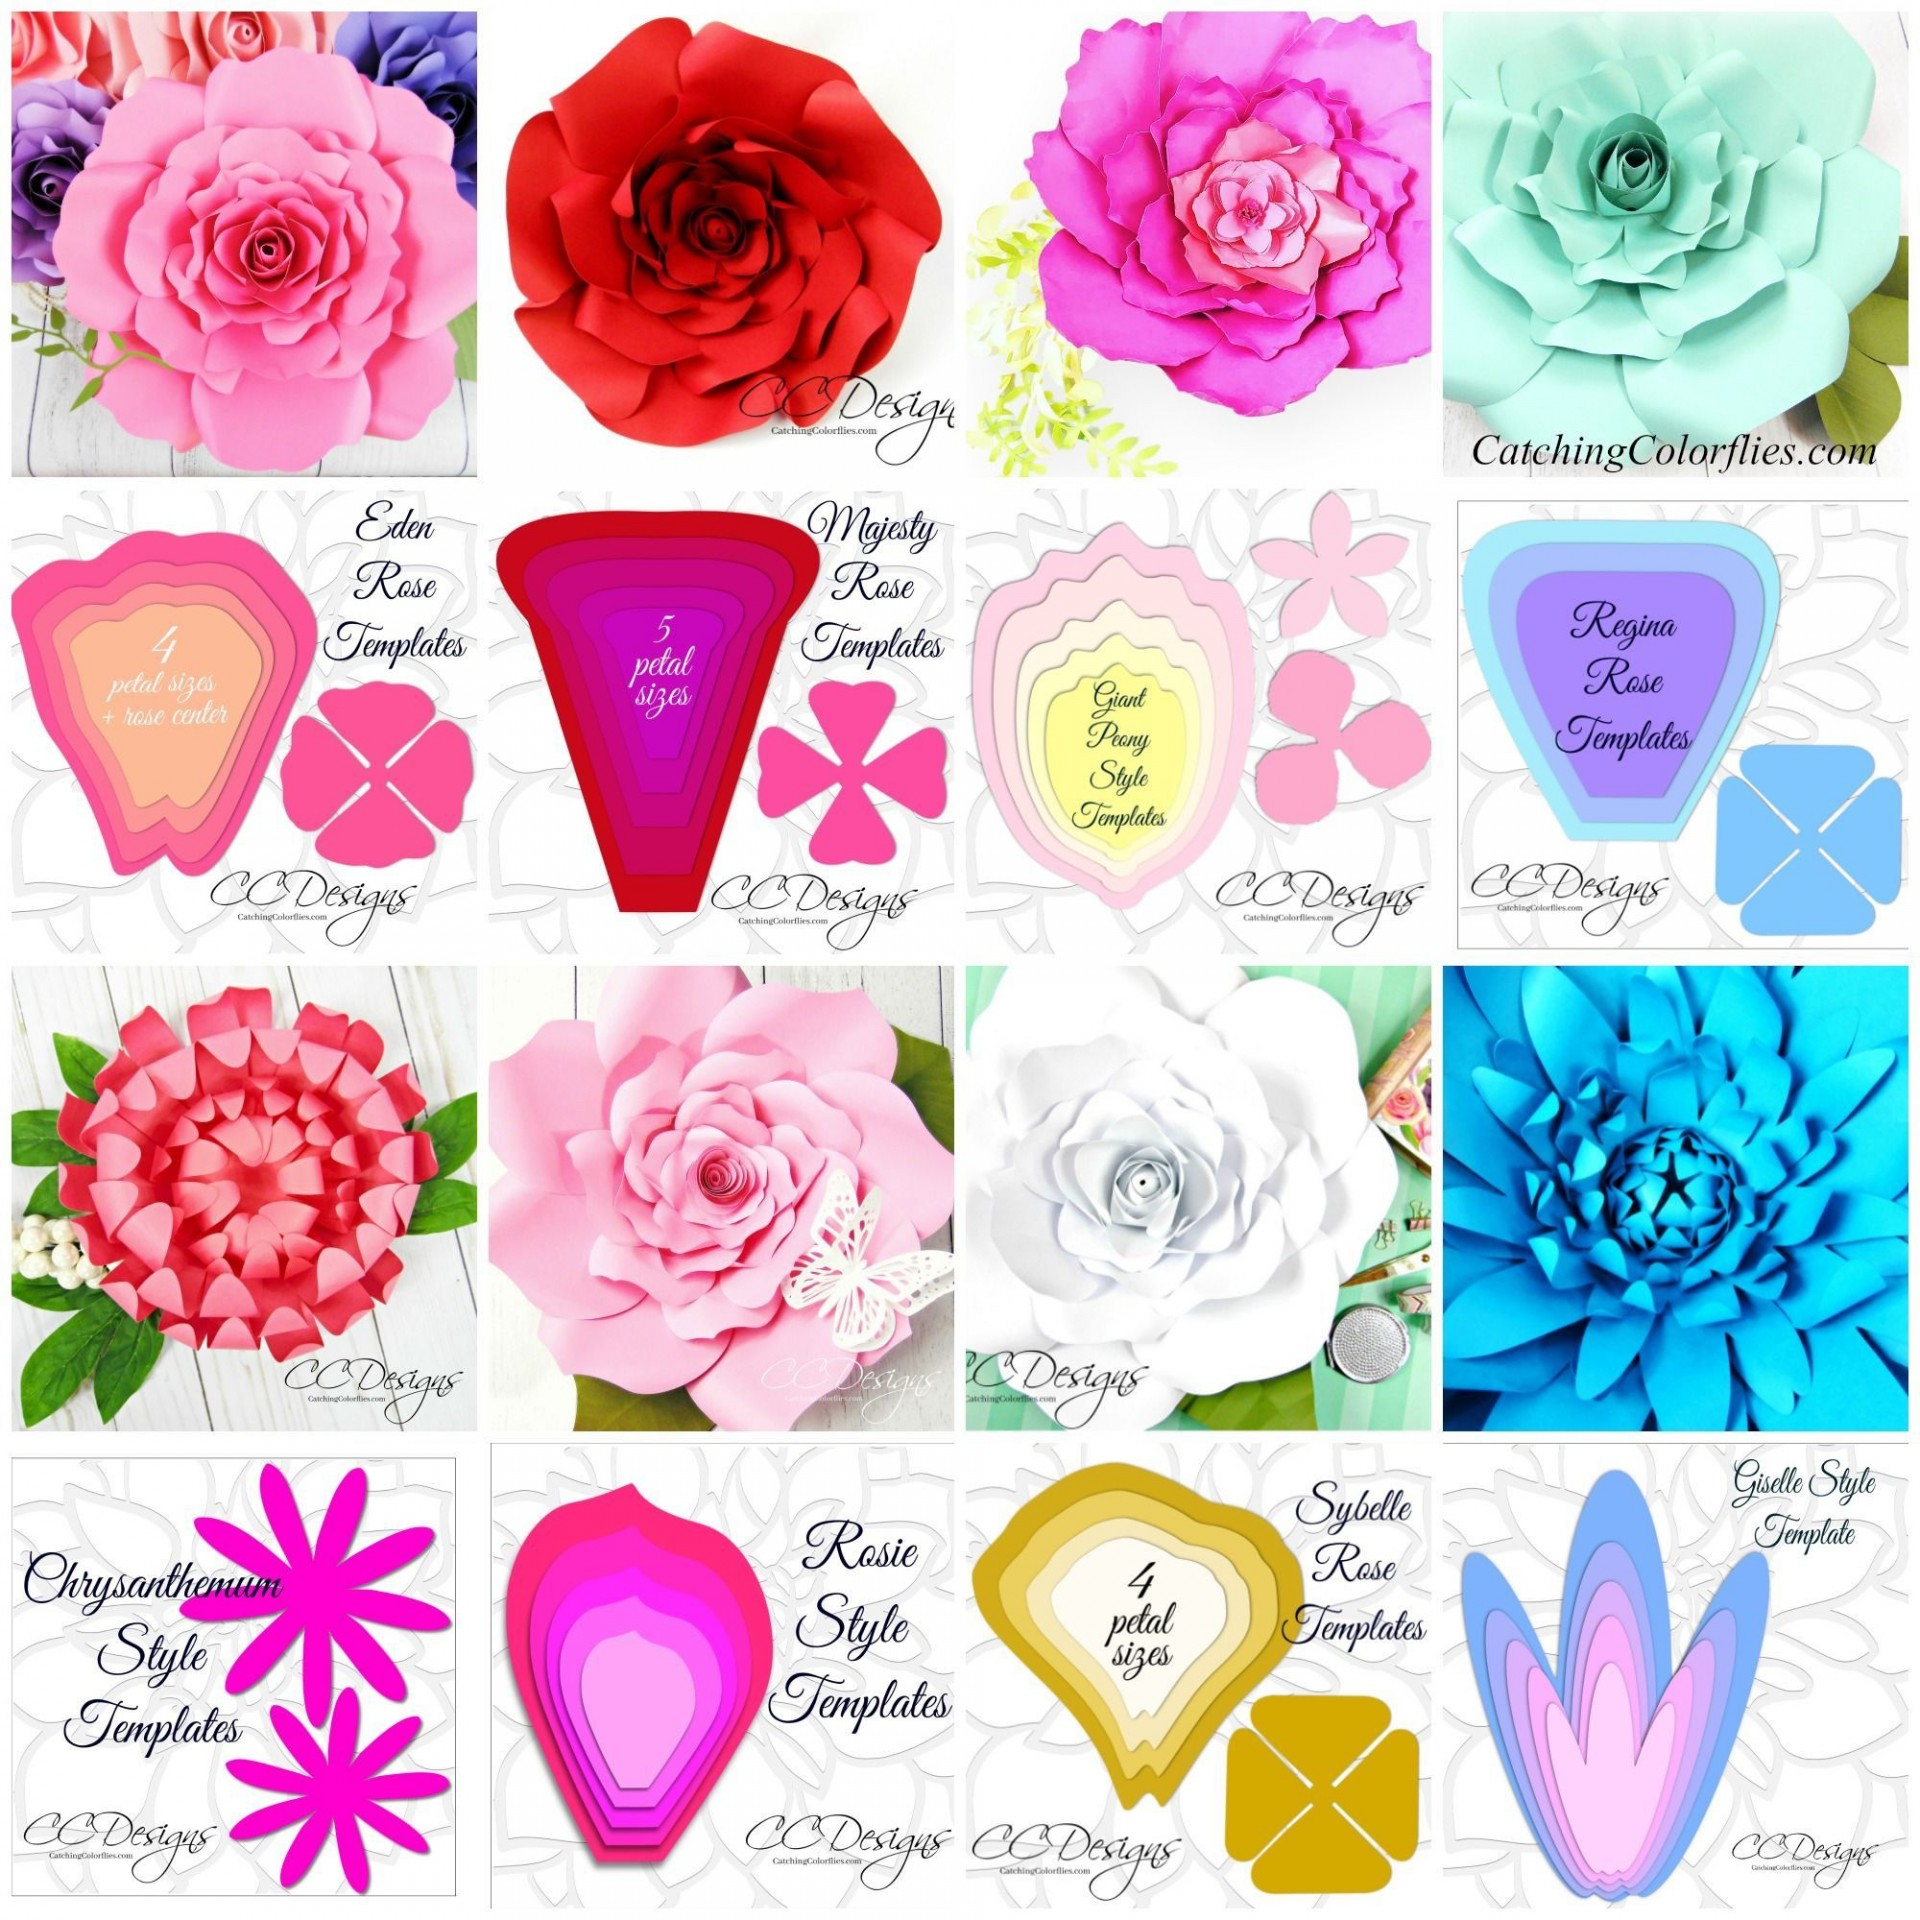 000 Fascinating Large Rose Paper Flower Template Free Photo 1920